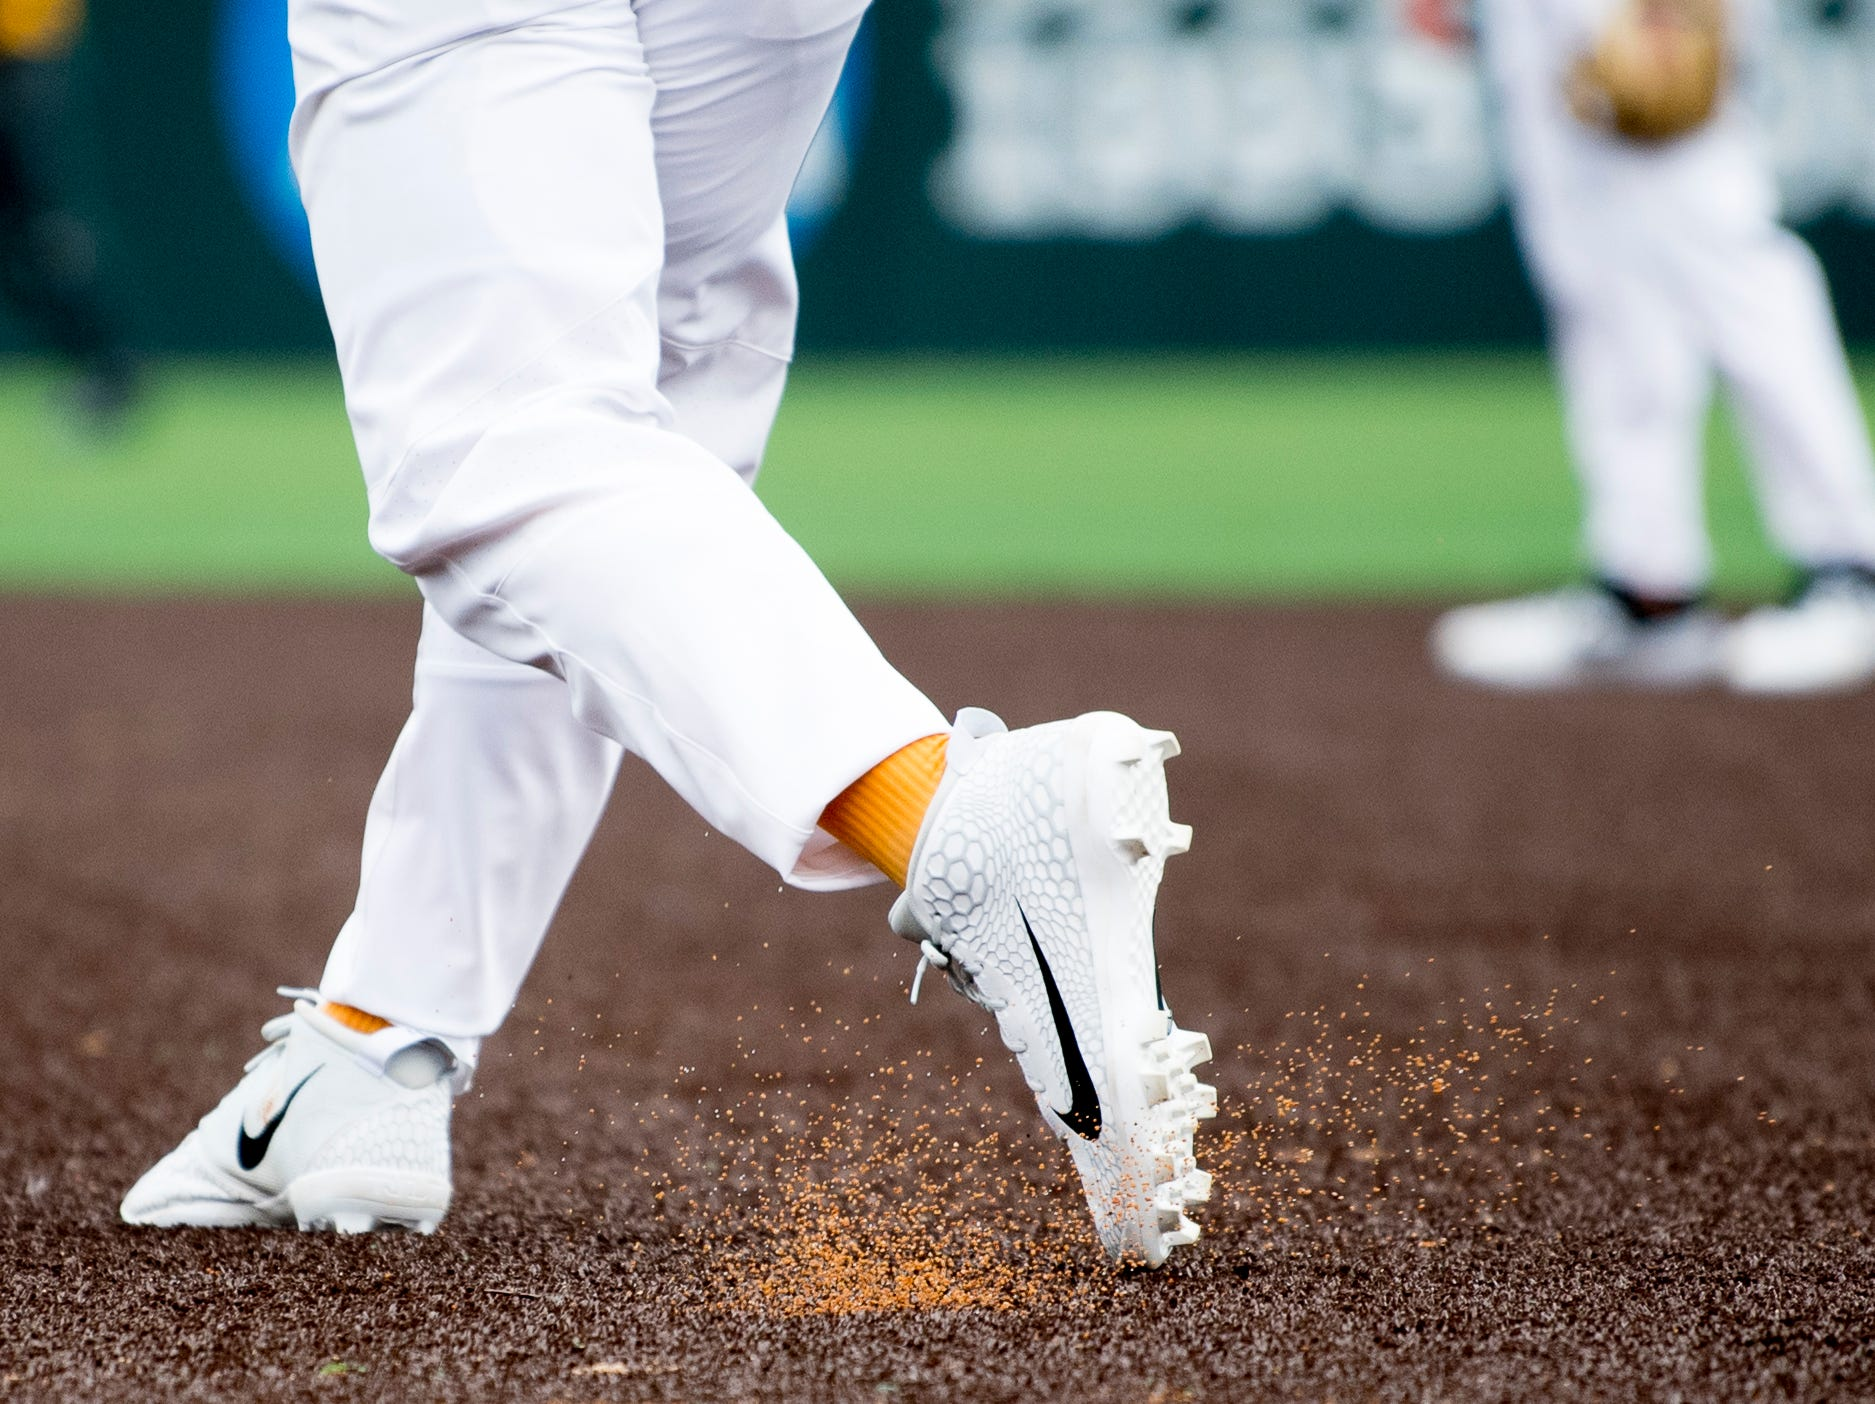 A Tennessee player kicks up turf pieces on the all-new turf field at Lindsey Nelson Stadium in Knoxville, Tennessee on Saturday, February 16, 2019. The pitchers mound is the only part of the field that remains dirt.